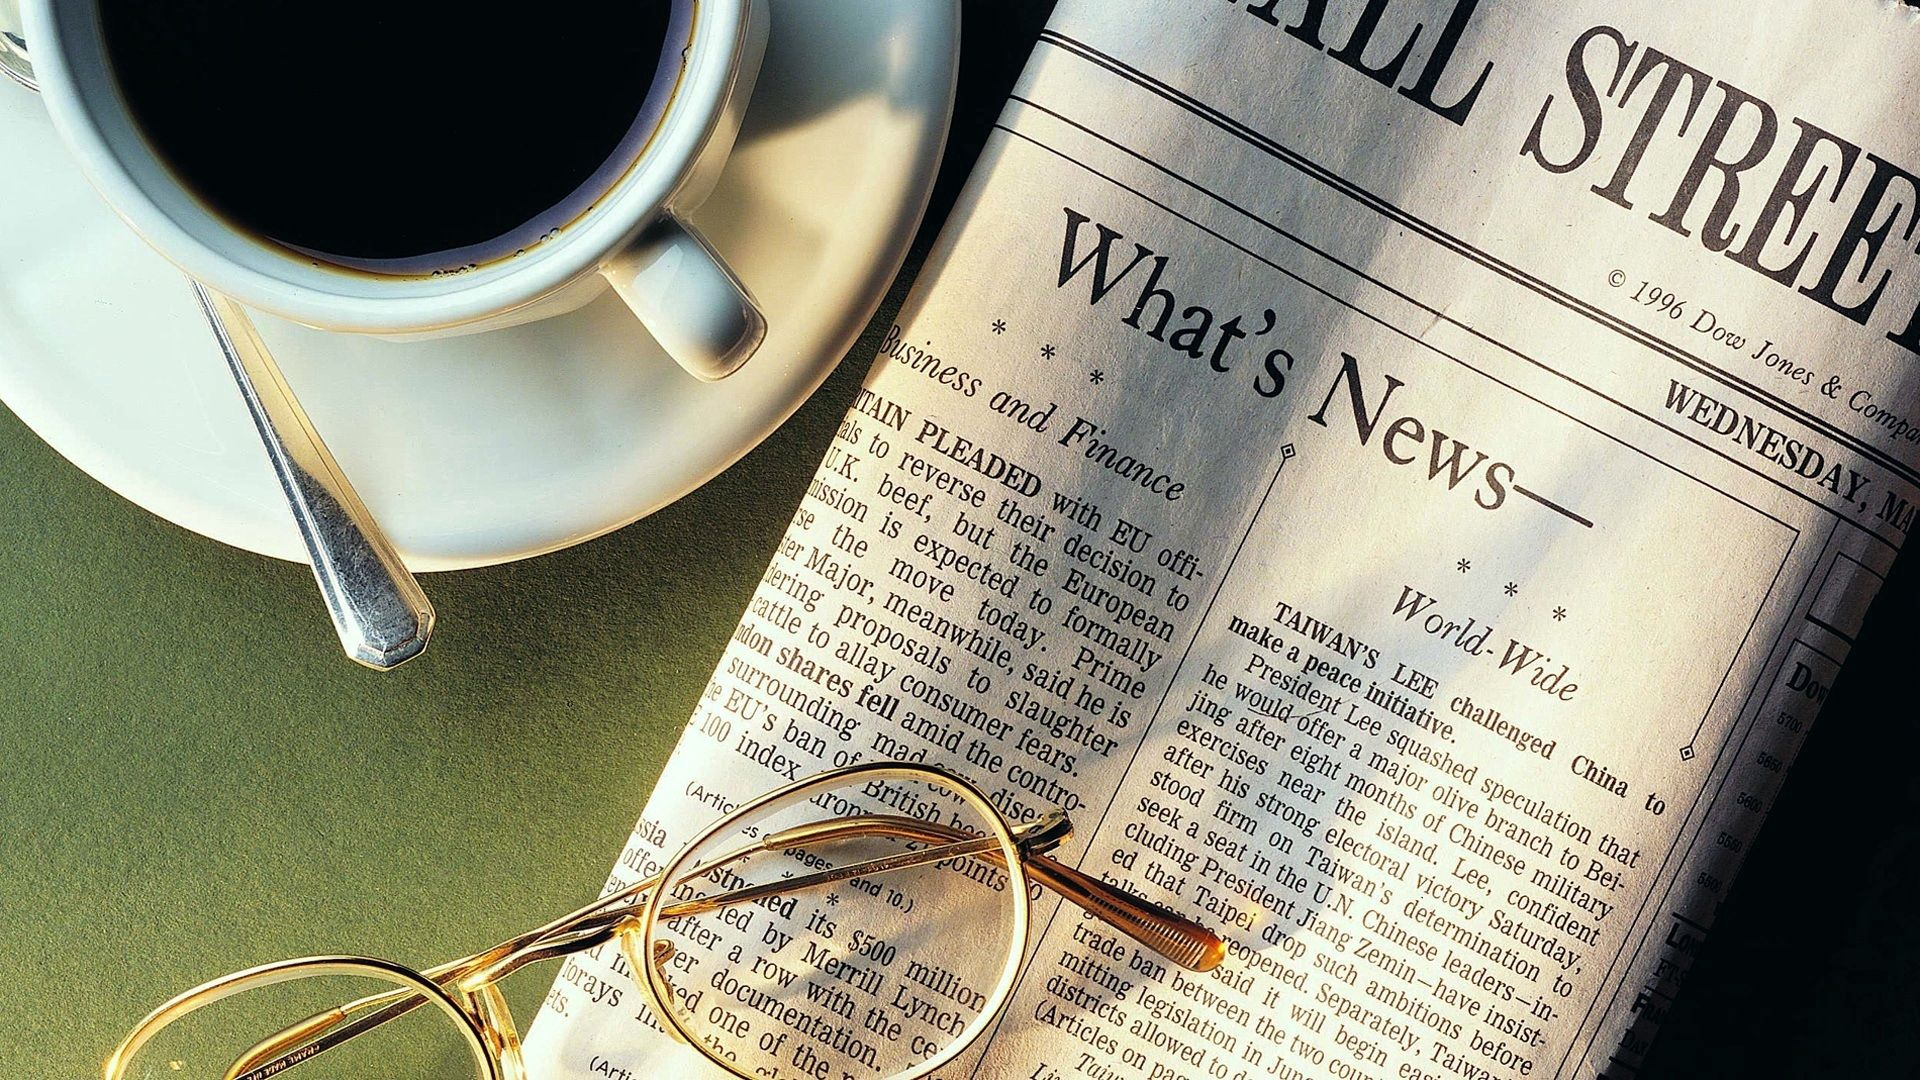 89413 download wallpaper Food, Coffee, Cup, Glasses, Spectacles, Newspaper, Spoon, News, Cup Holder screensavers and pictures for free